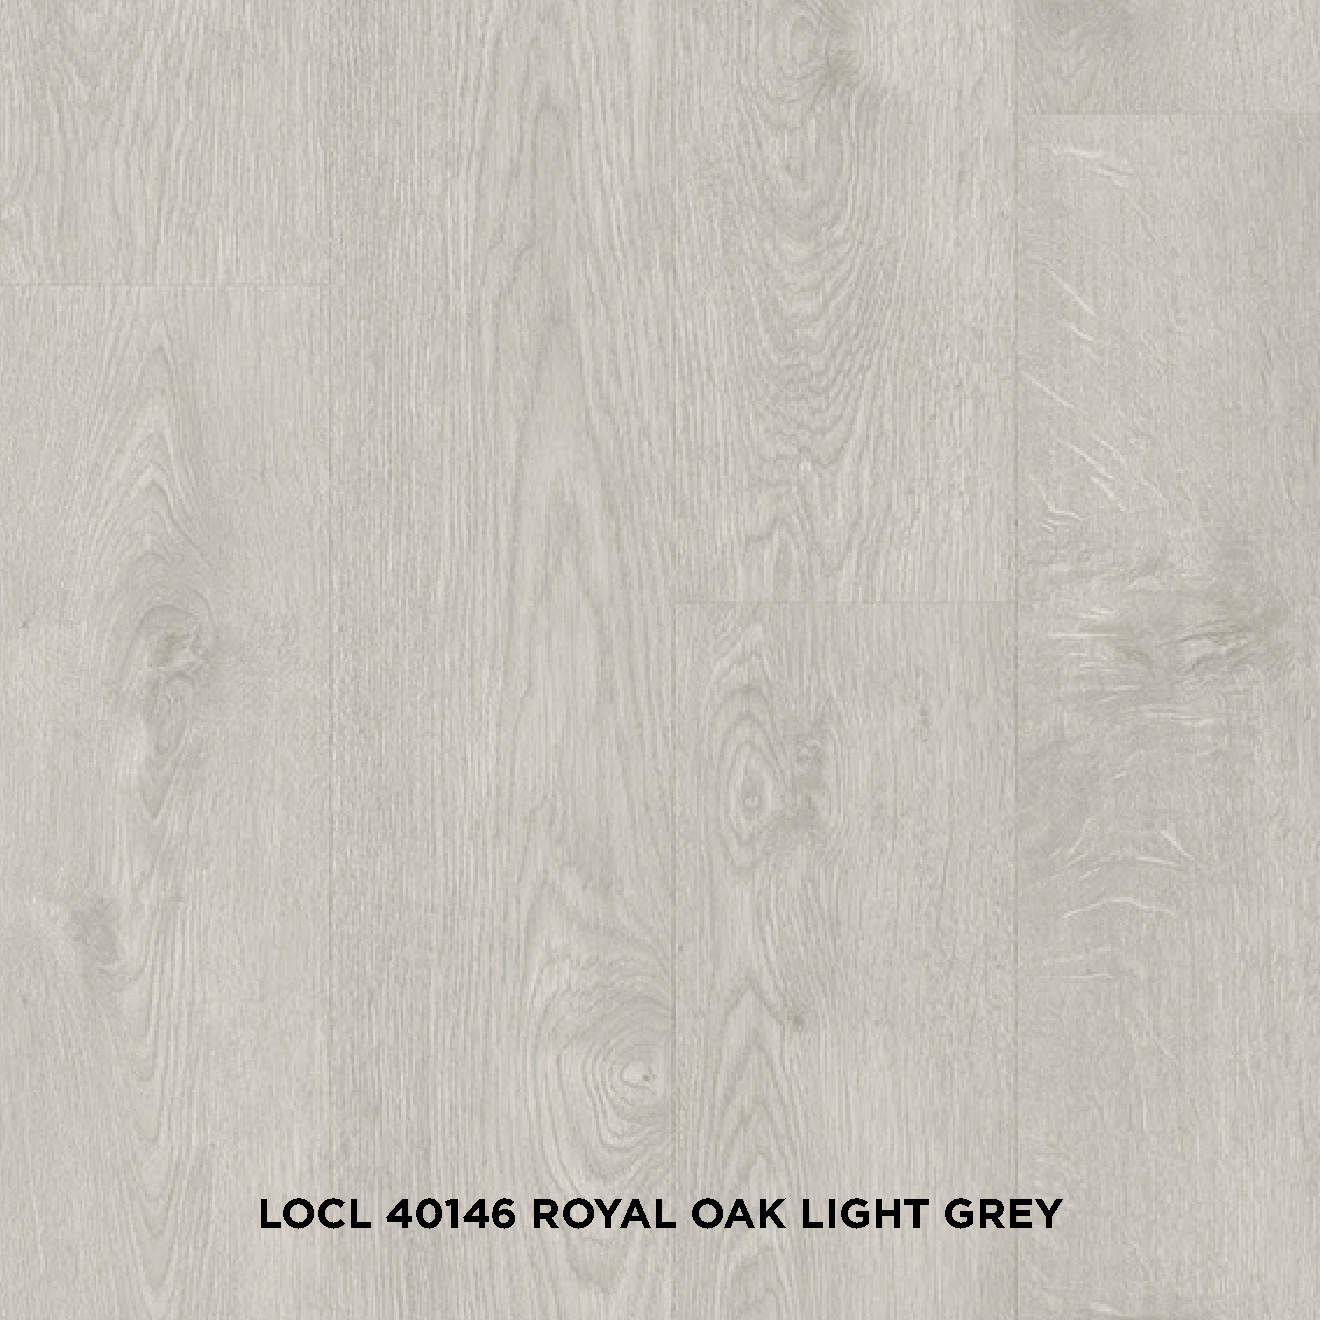 LOCL 40146 ROYAL OAK LIGHT GREY